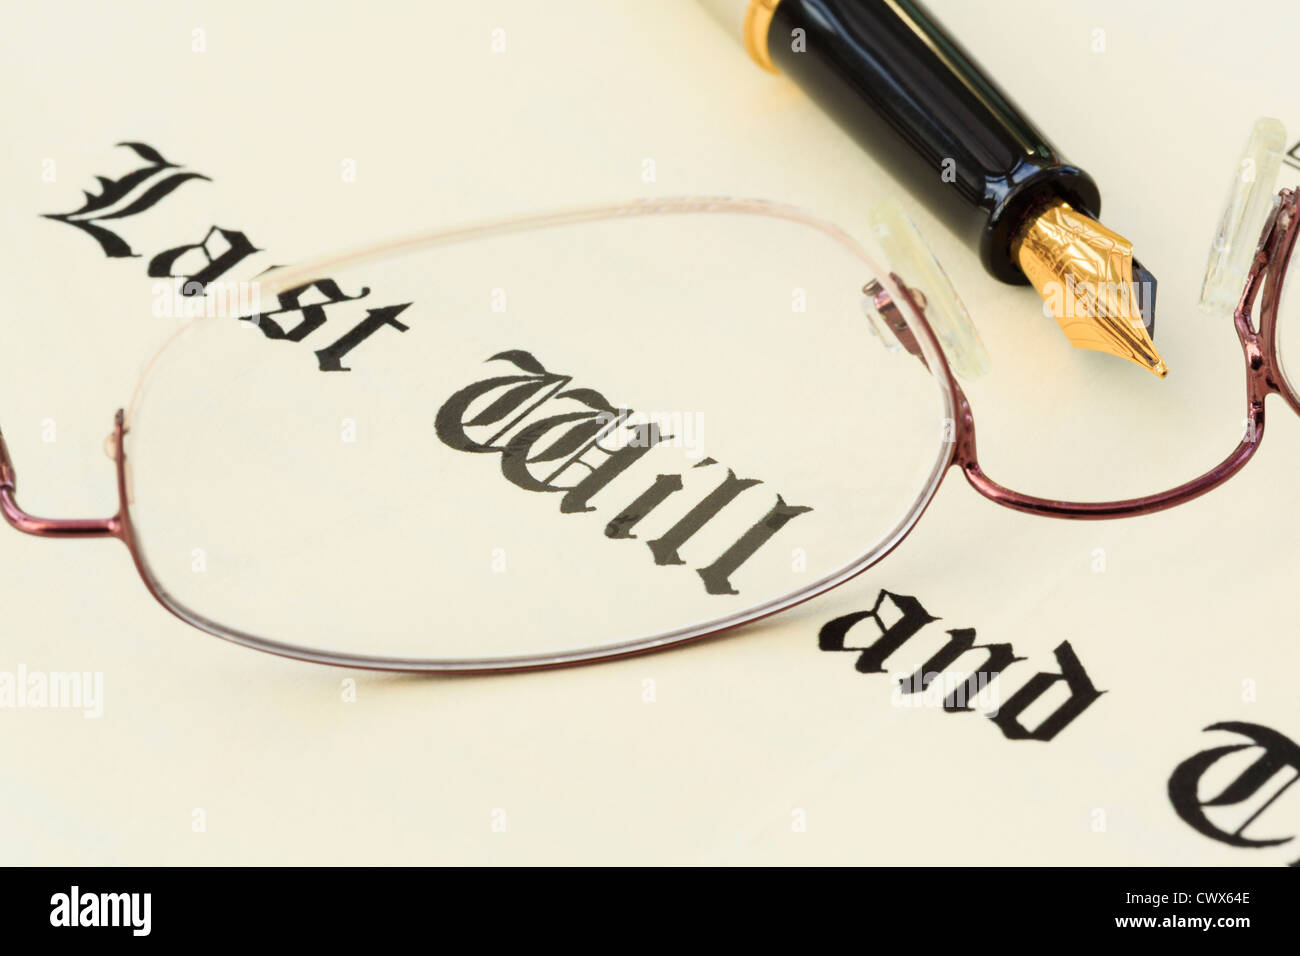 Last Will and Testament document with a pair of metal rimmed spectacles and a fountain pen for signing. England - Stock Image